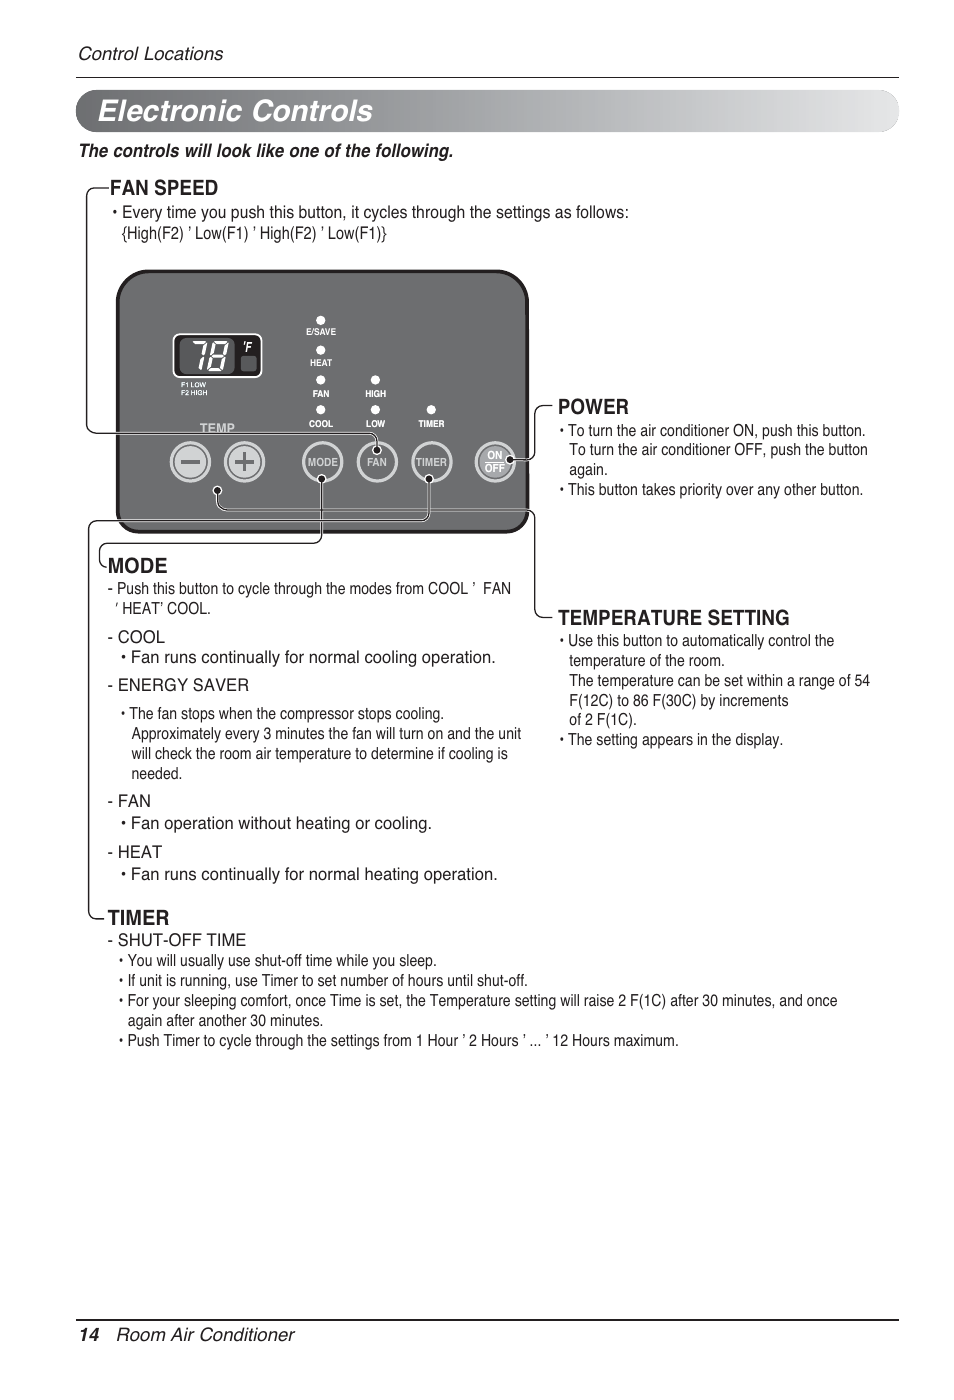 Electronic controls, Power mode, Timer | LG LP090CED-Y8 User